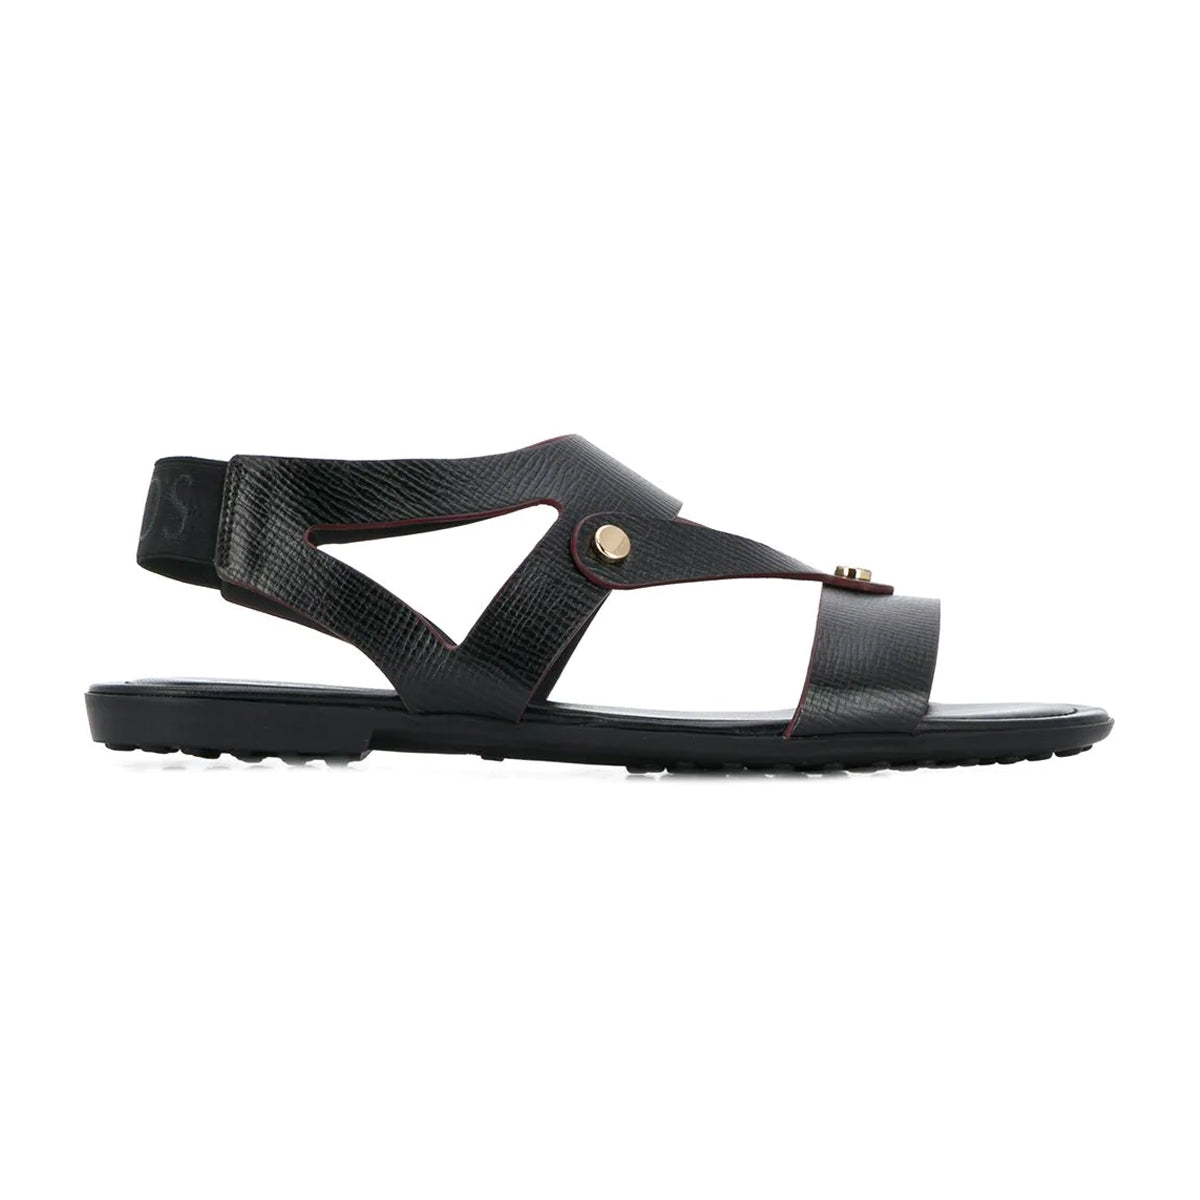 Slip-on Caged Leather Sandals with Rubber Sole